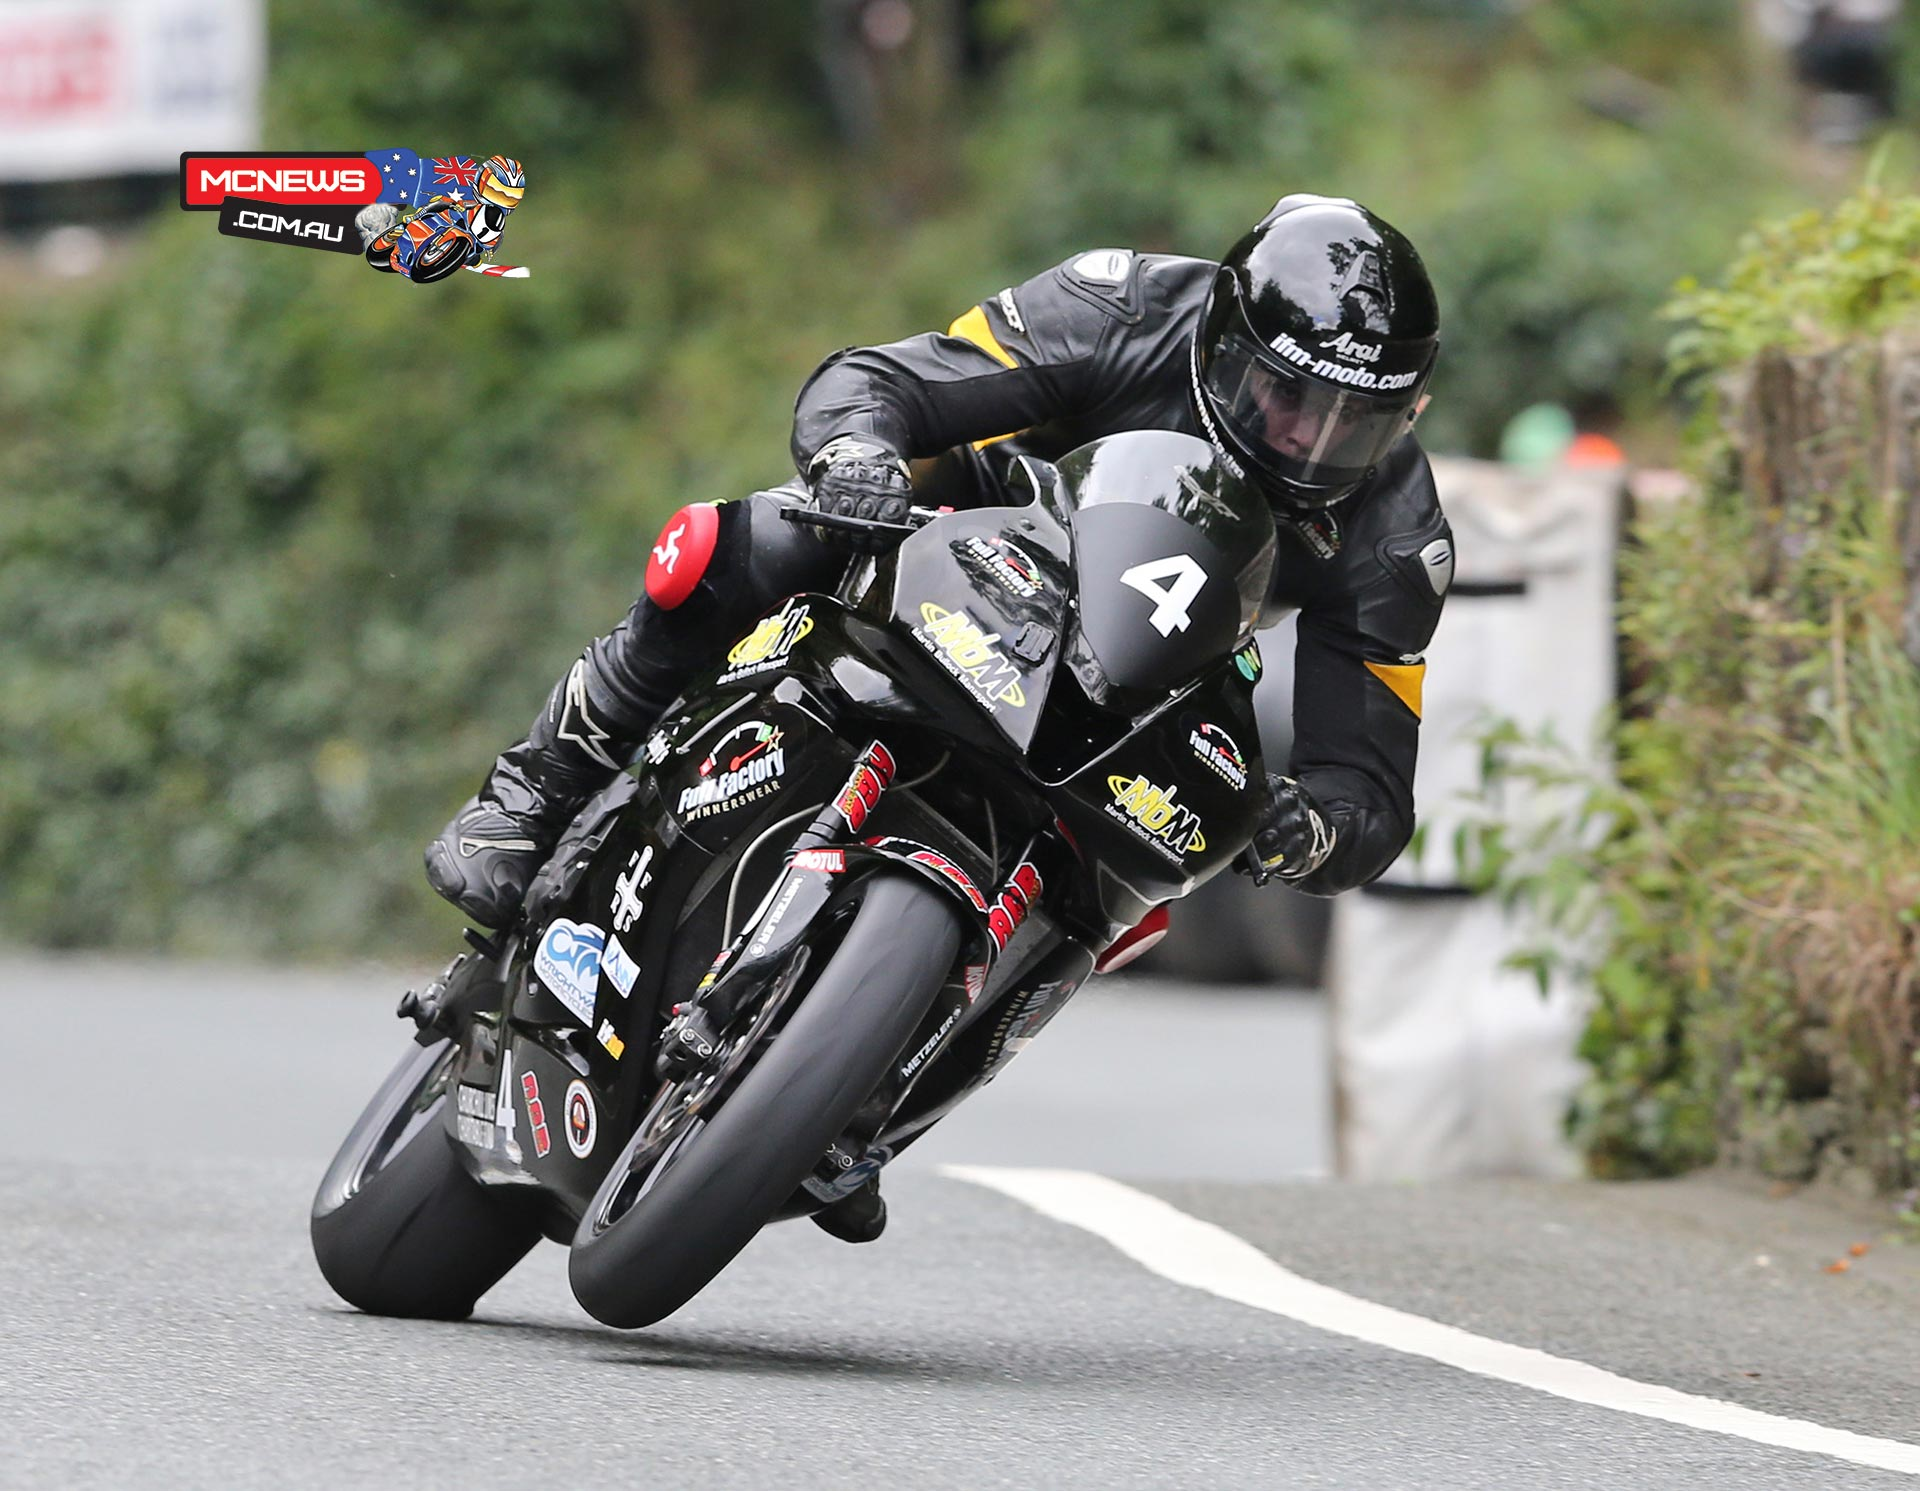 Billy Redmayne on the Martin Bullock Motorsport Honda CBR600RR at Union Mills during the Mylchreests Group Junior Manx Grand Prix race.